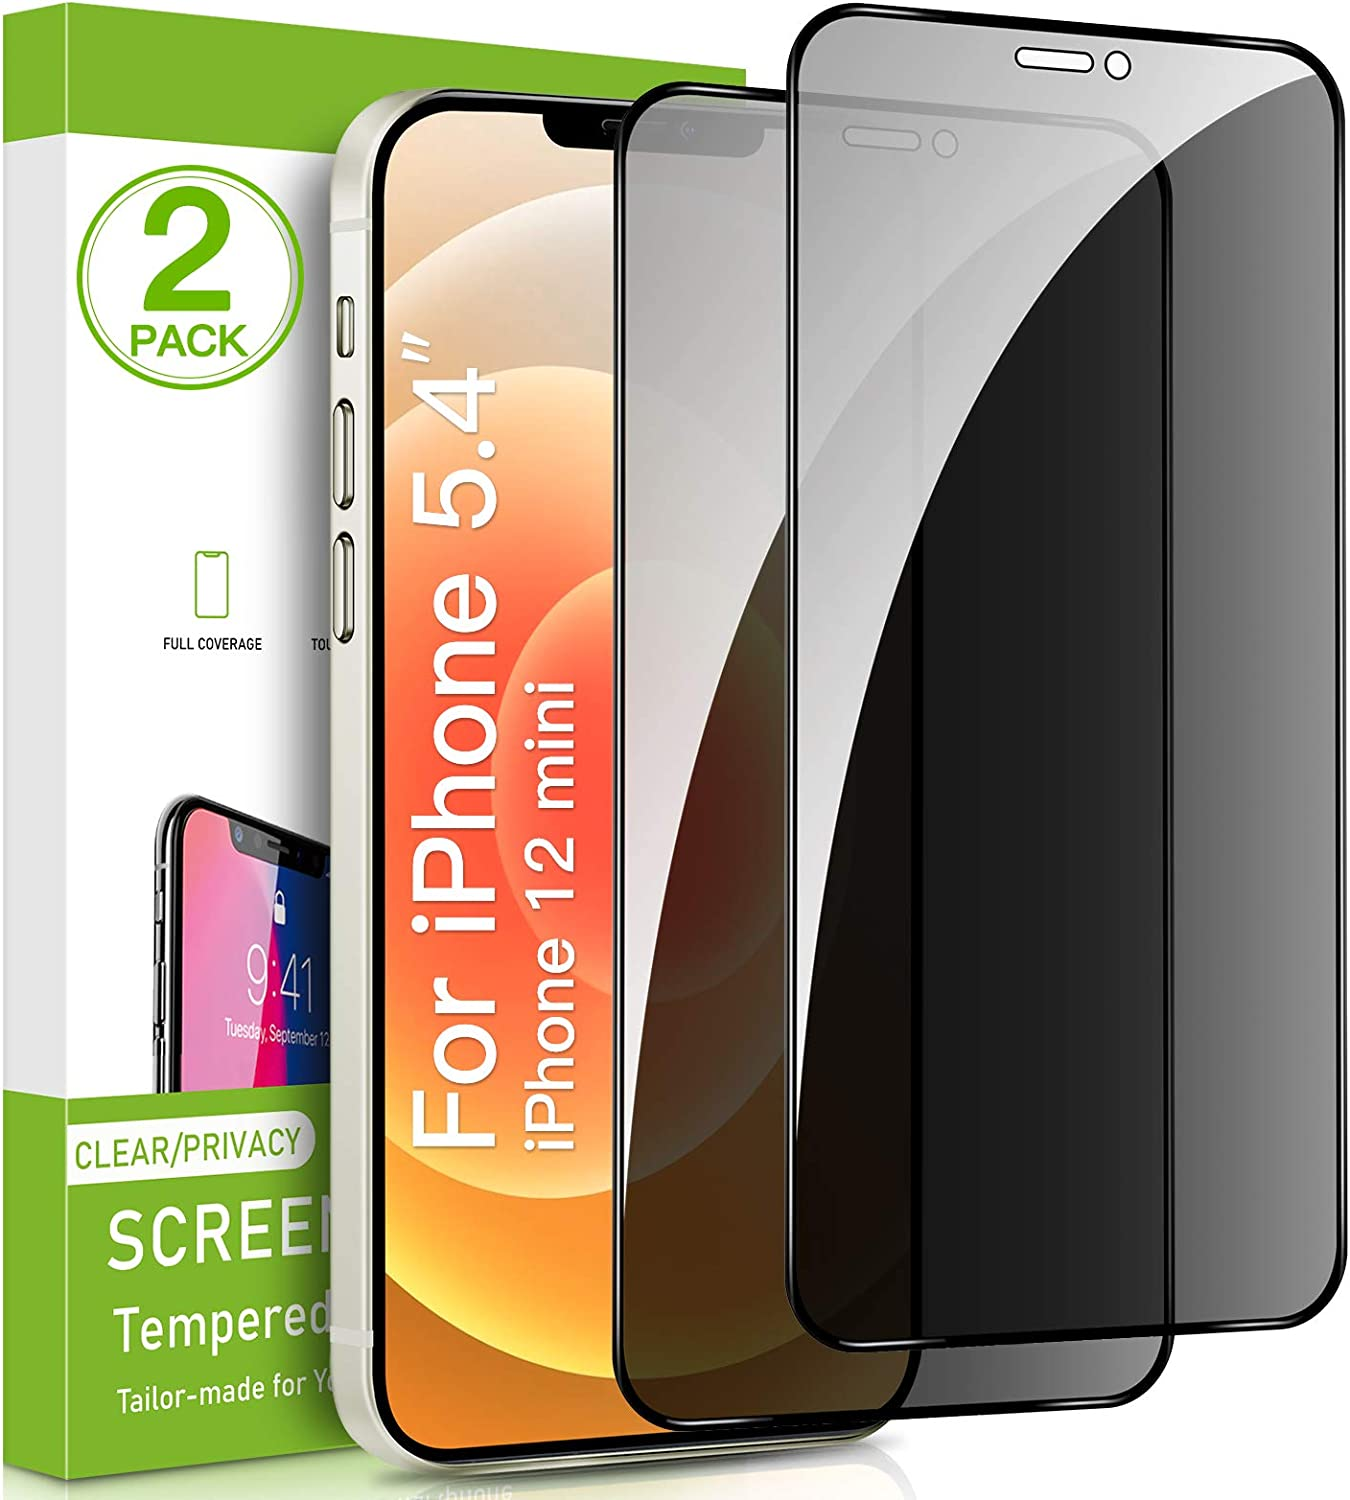 Intermerge 2 Pack Privacy Screen Protector Compatible with iPhone 12 mini,Premium 4D Curved Edge to Edge Full Coverage Privacy Tempered Glass Screen Protector Replacement for iPhone 12 mini-5.4 inch